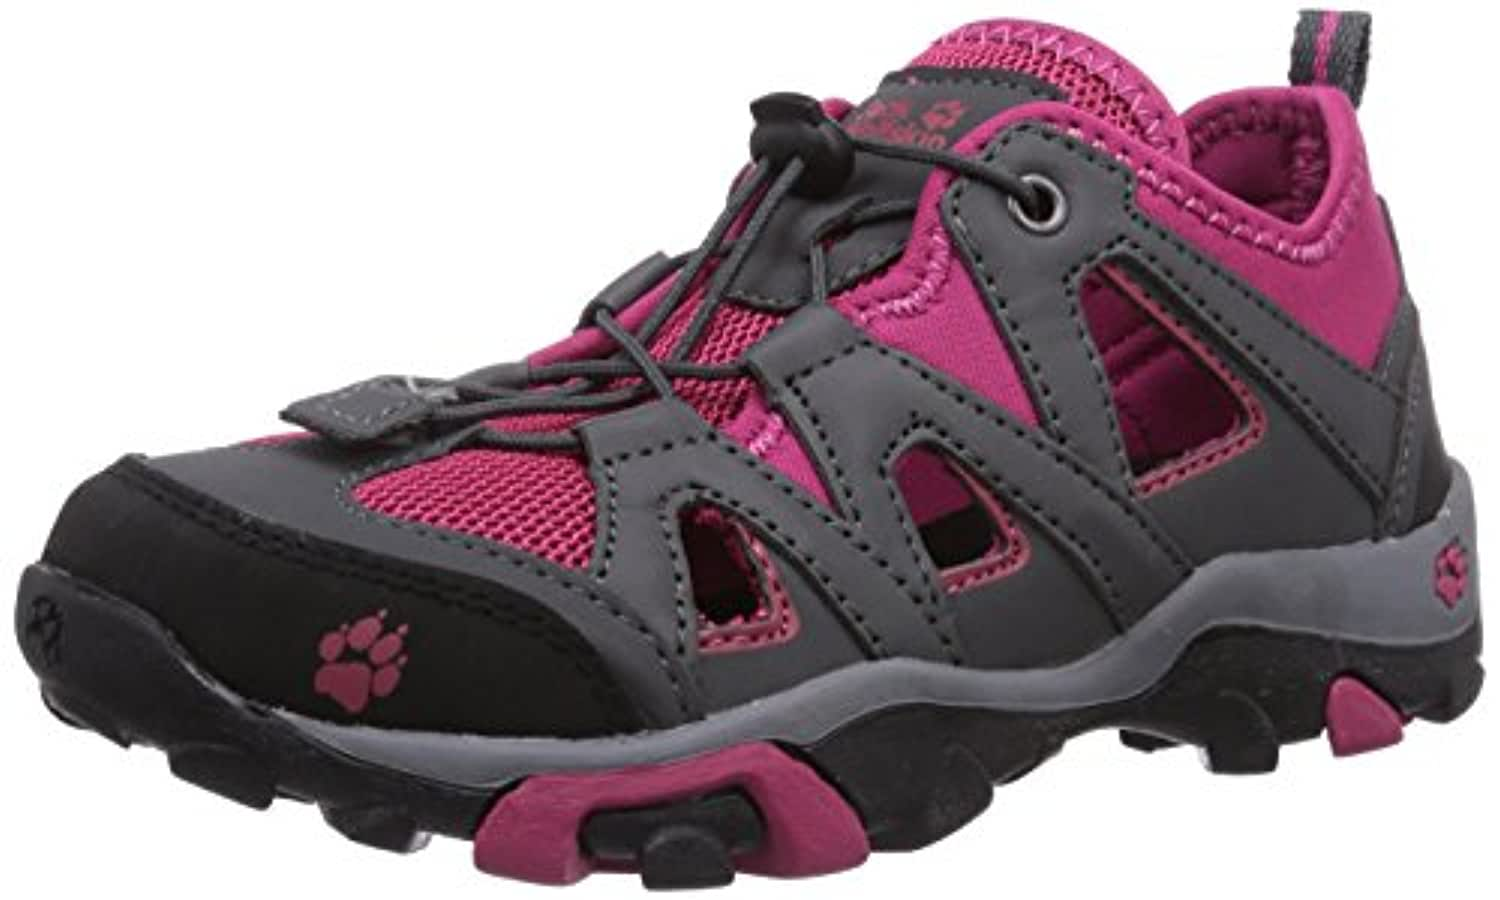 Jack Wolfskin Kids Mtn Attack Air, Unisex Kids' Hiking Shoes, Grey (azalea red 2081), 1 UK (33 EU)